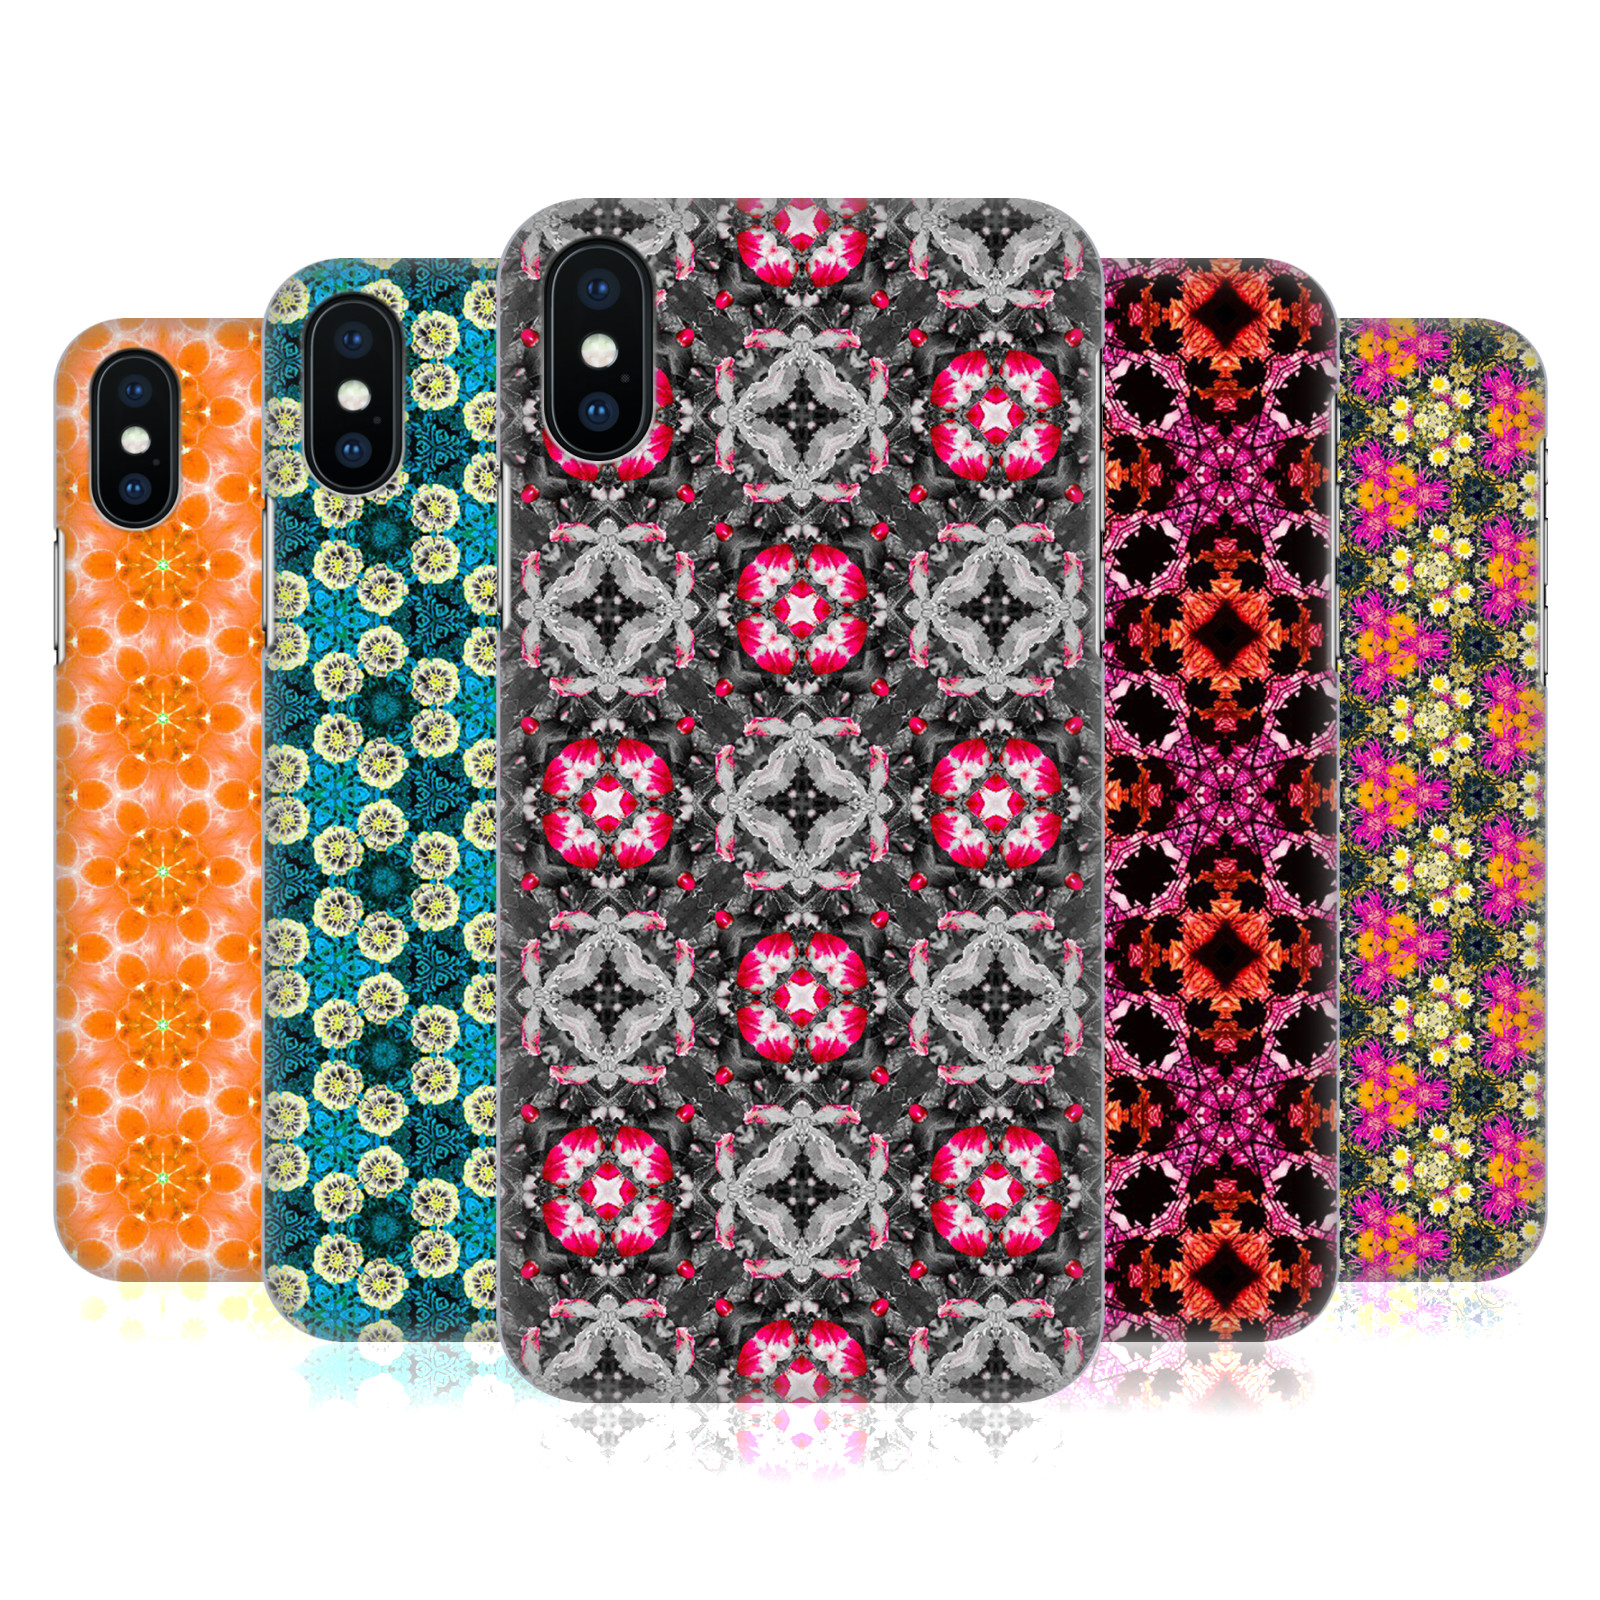 WondrousCre8tions Geometric Florals Collection